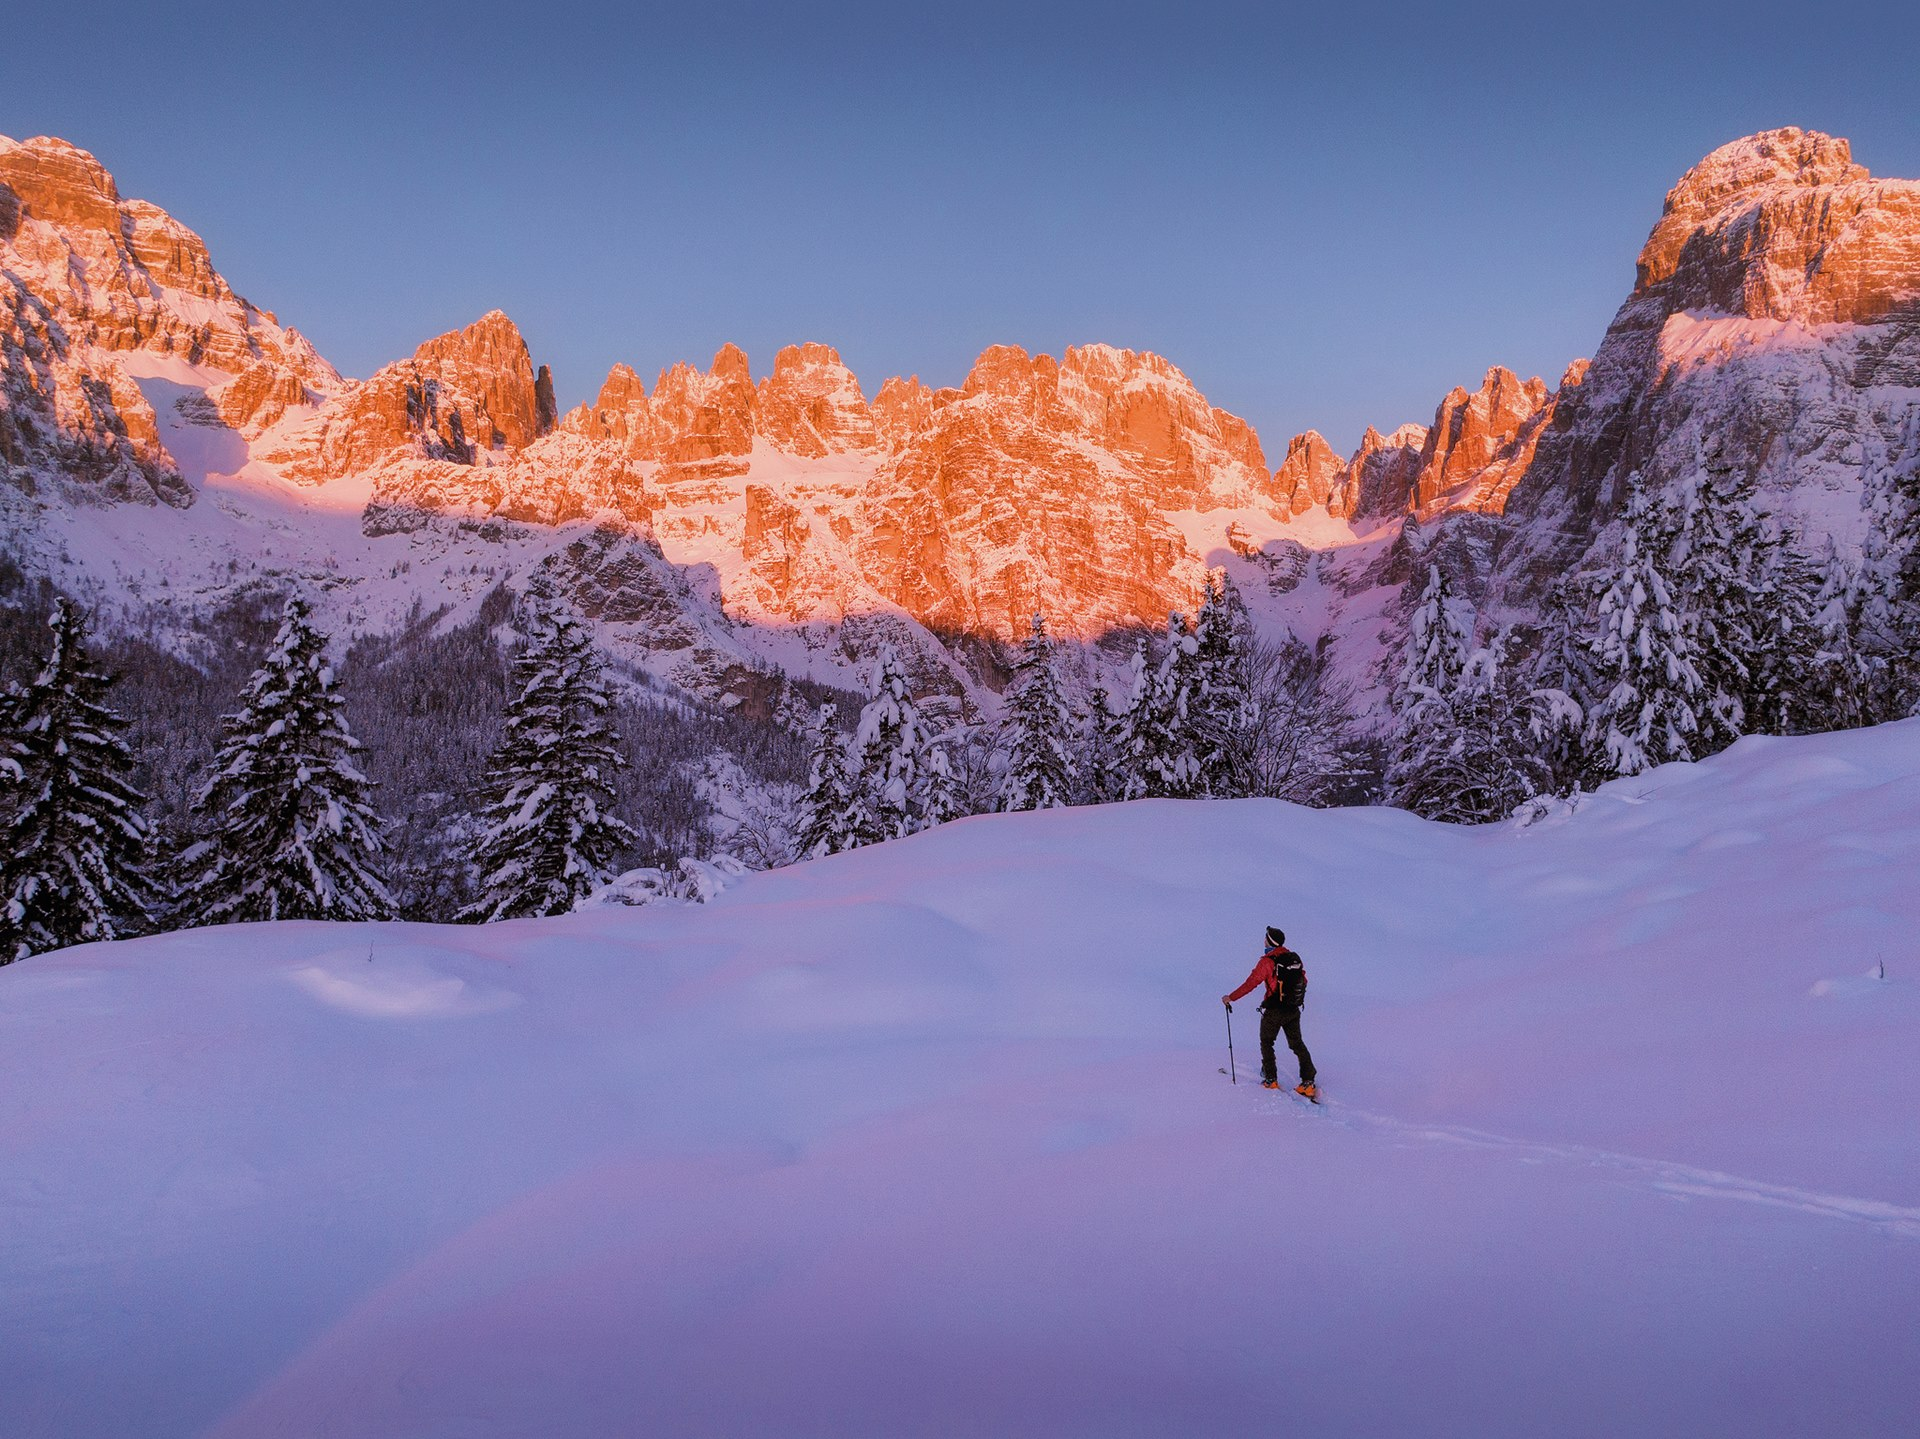 Ski Mountaineering at Sunrise